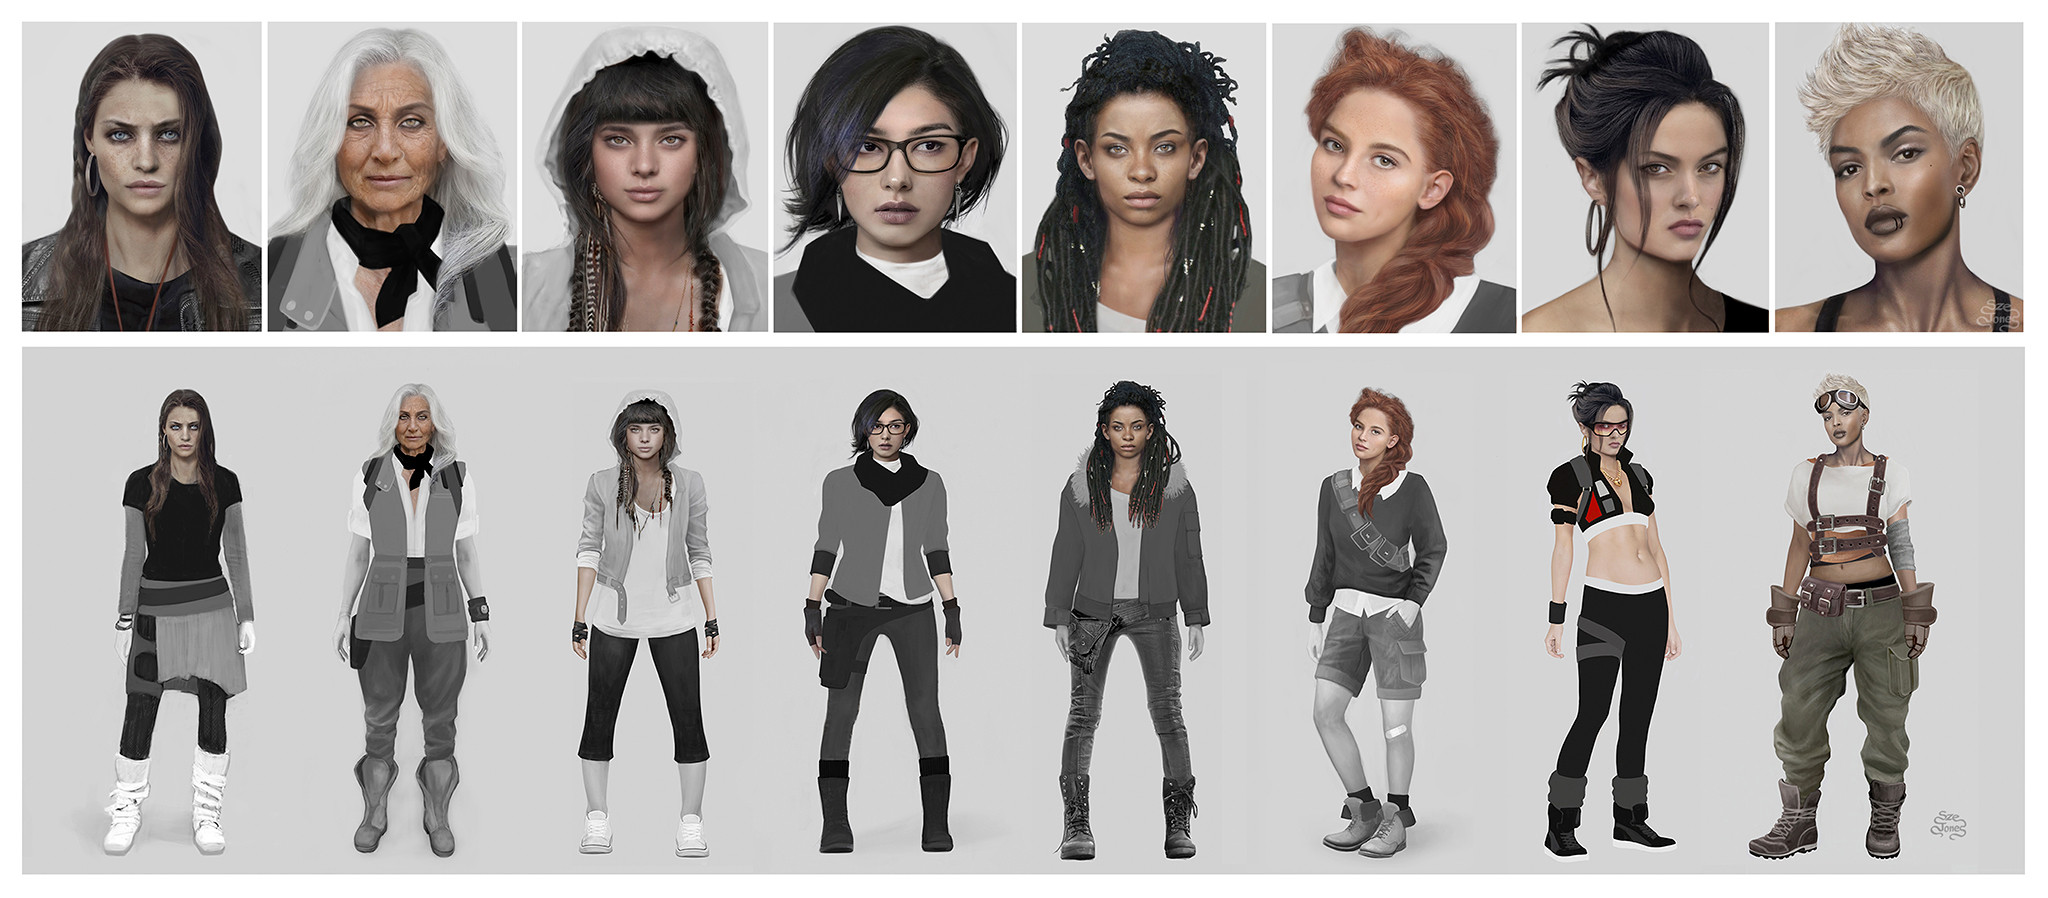 Character Design - Portrait and Costume